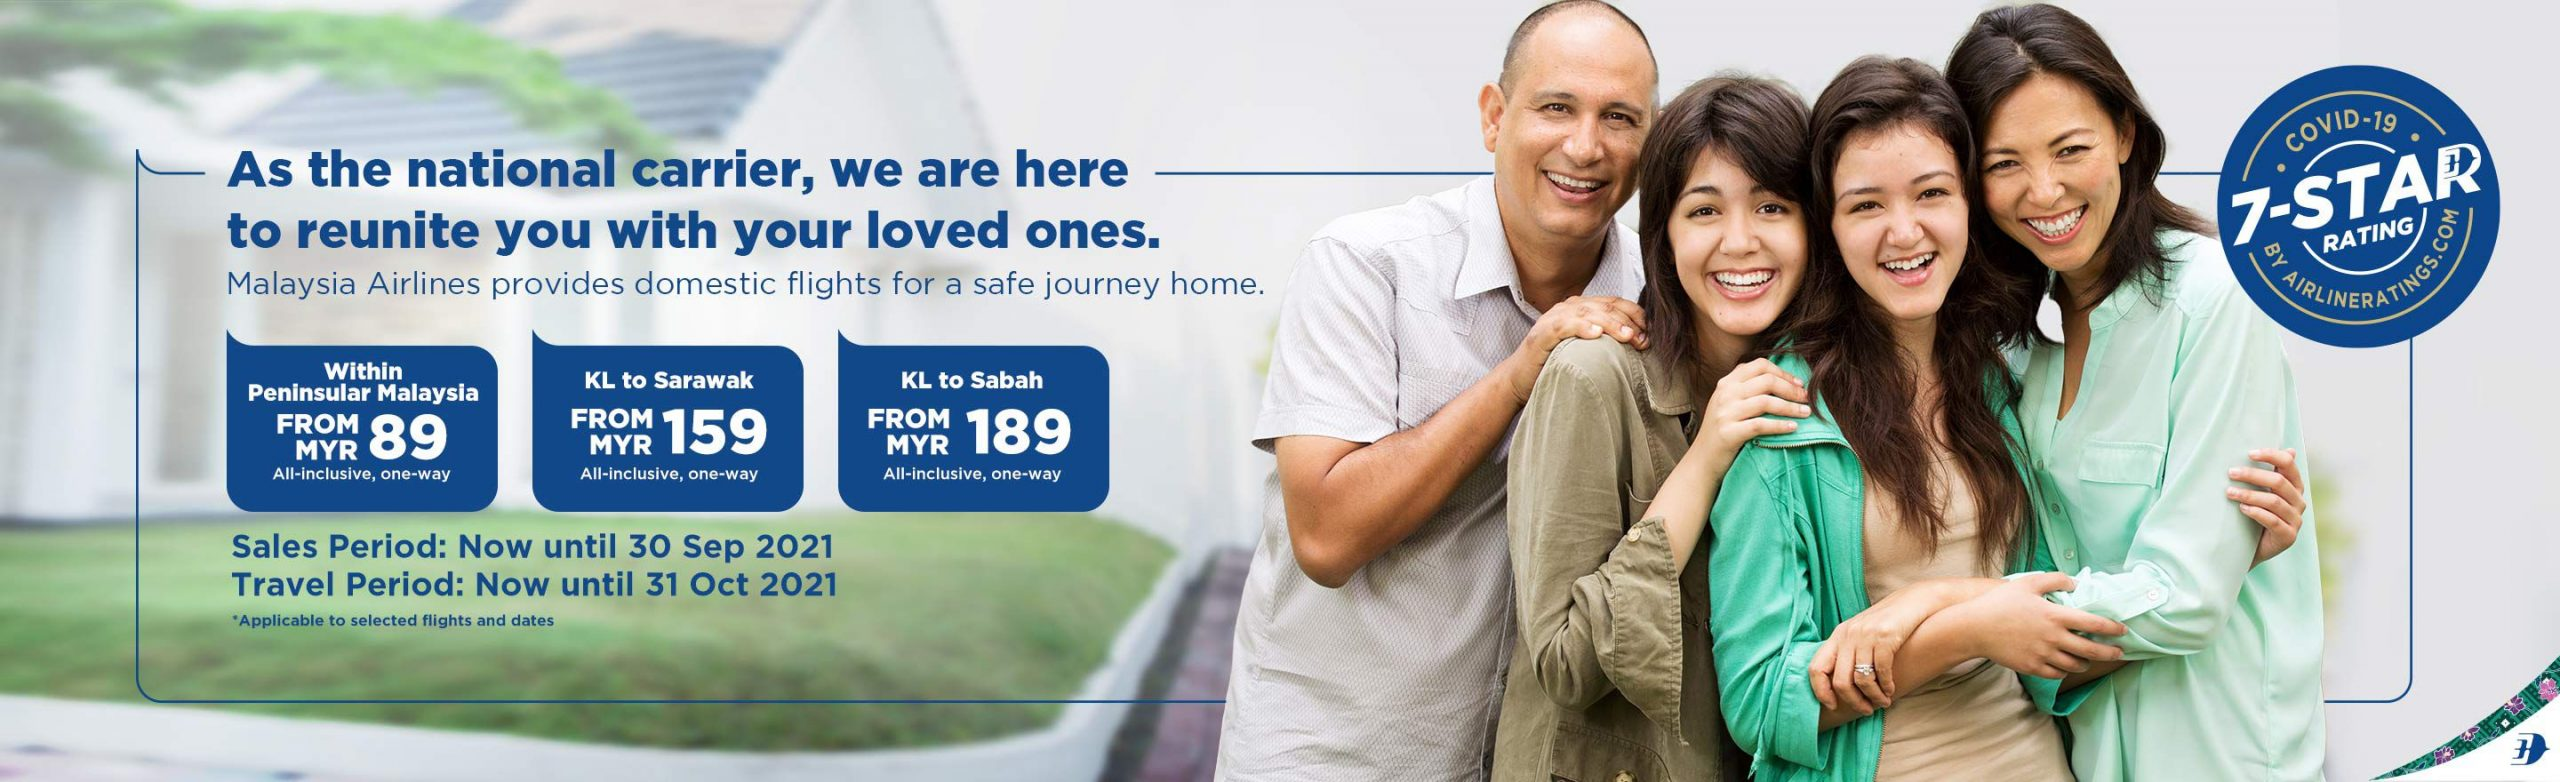 Malaysia Airlines Domestic Promo for Fully Vaccinated Couples & Parents MH 20210811 AD scaled